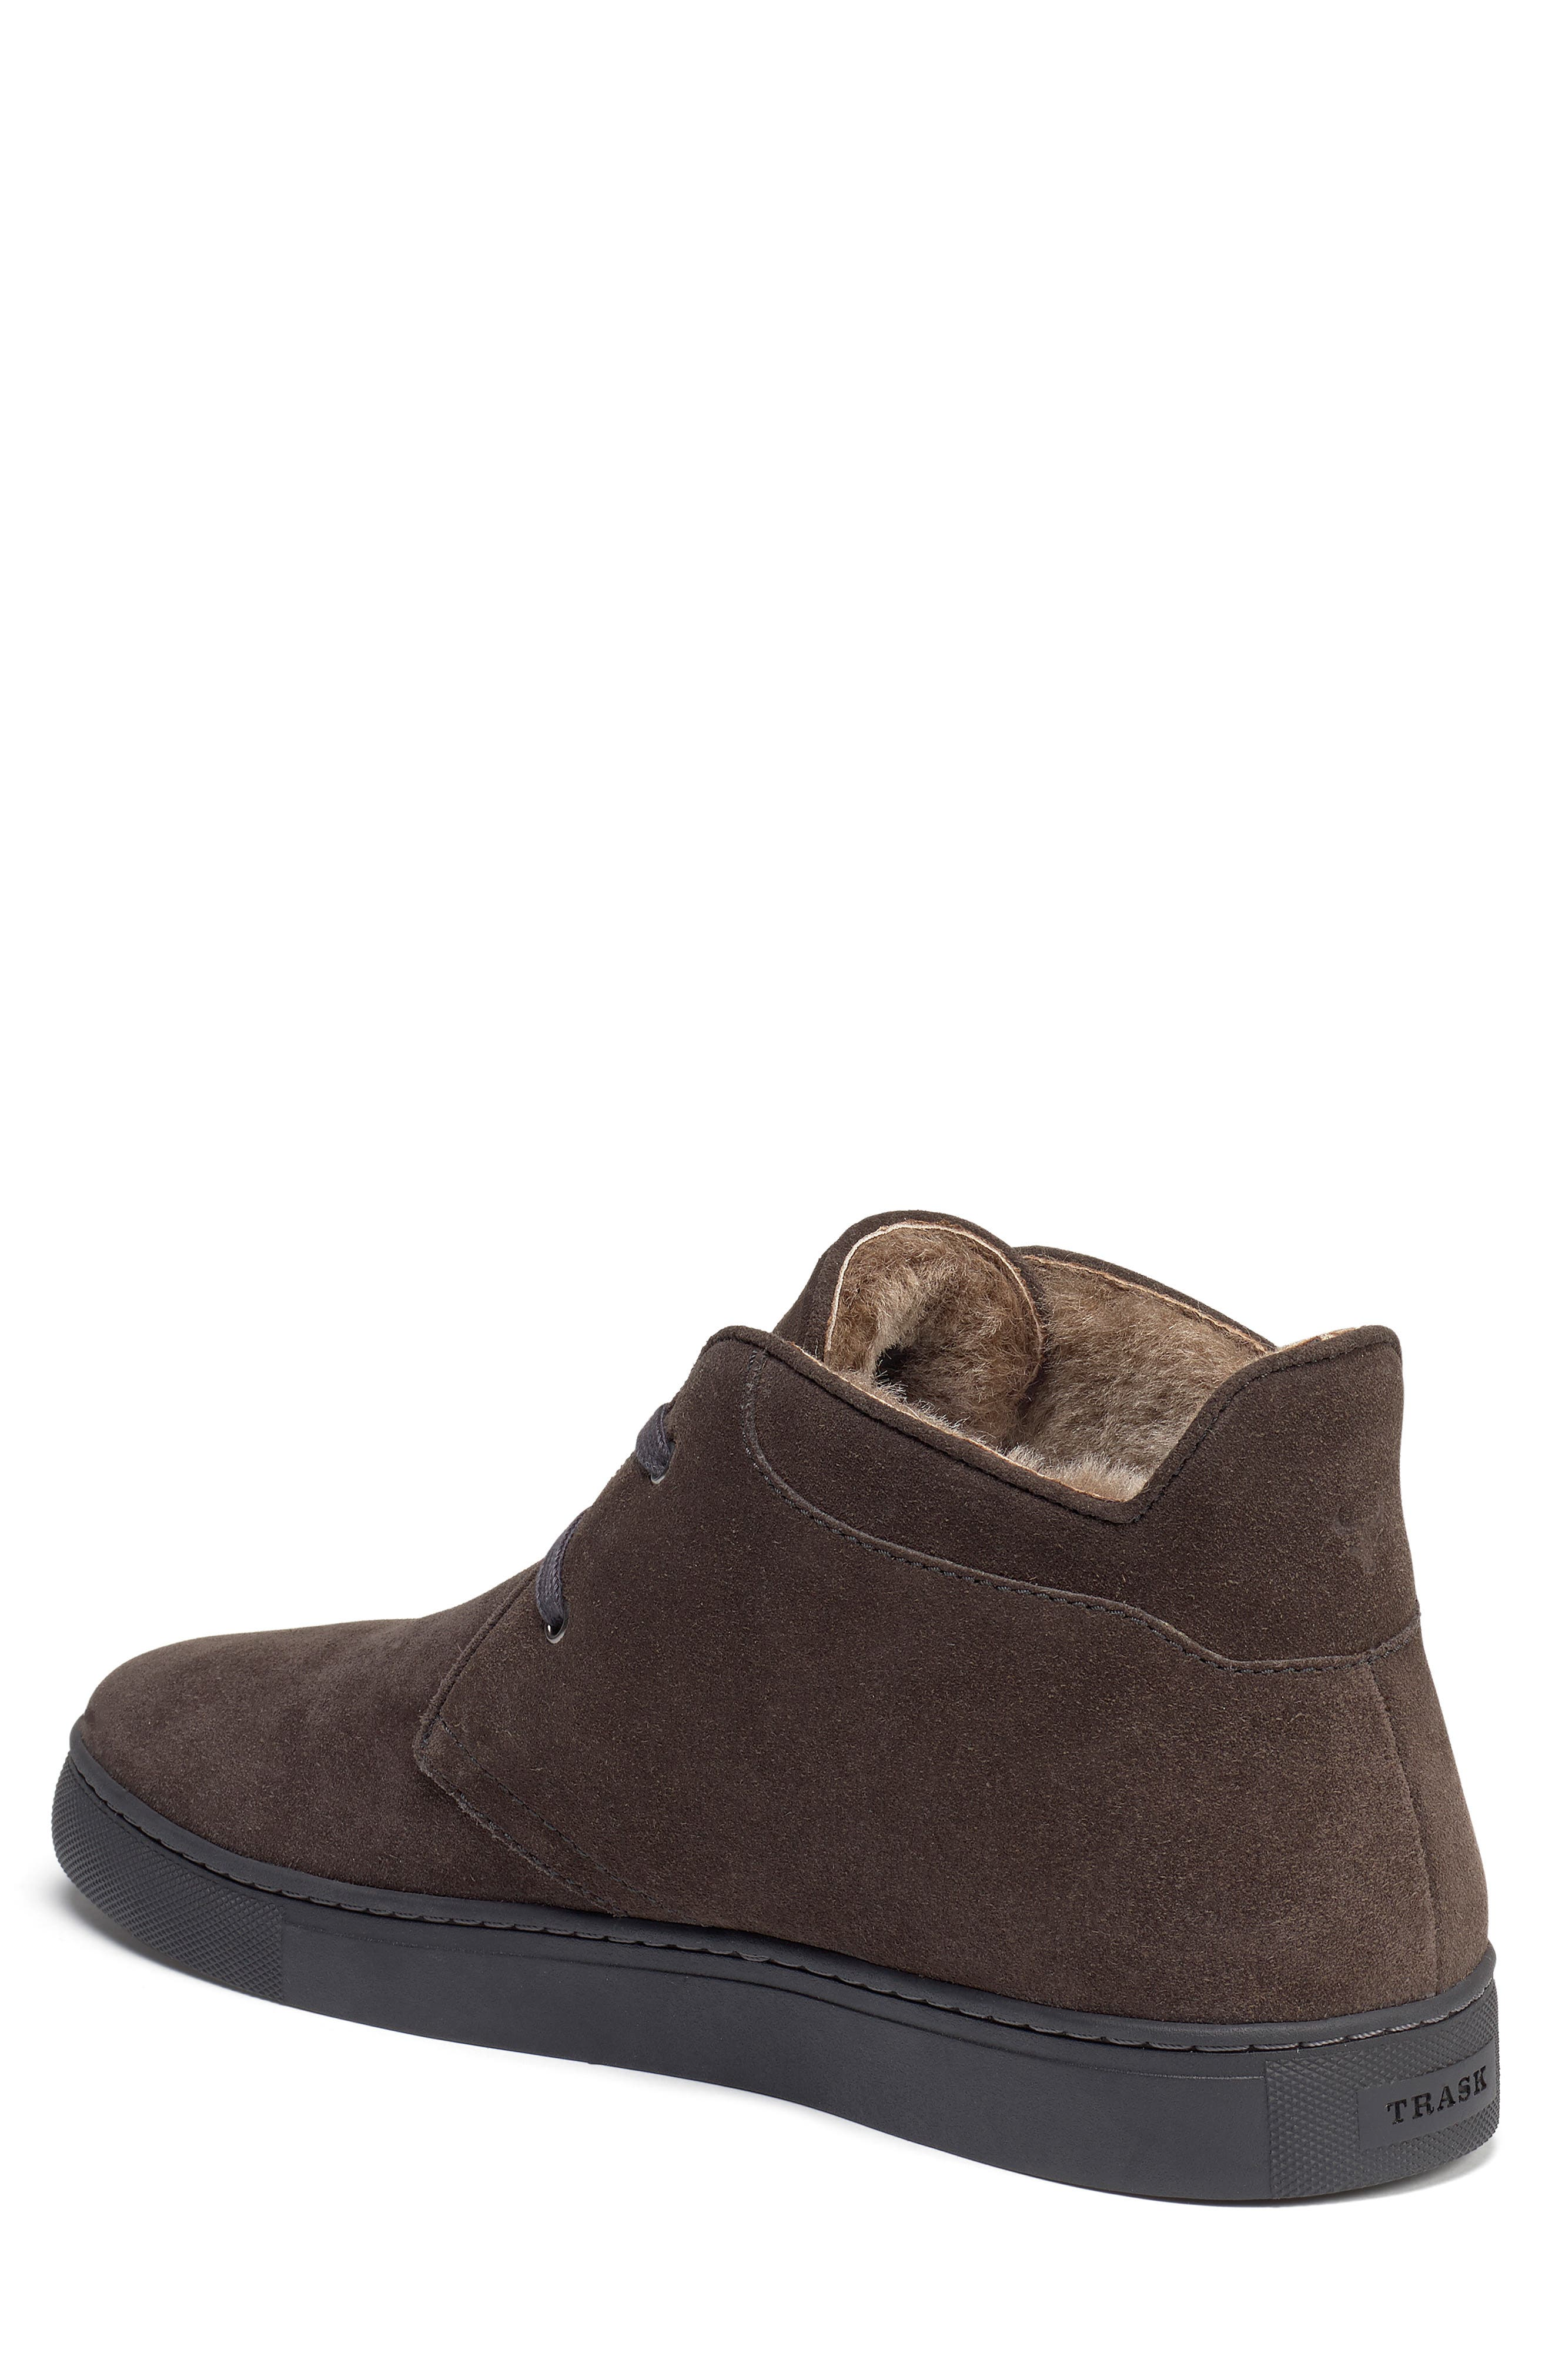 Ariston Genuine Shearling Chukka Boot,                             Alternate thumbnail 2, color,                             CHARCOAL SUEDE